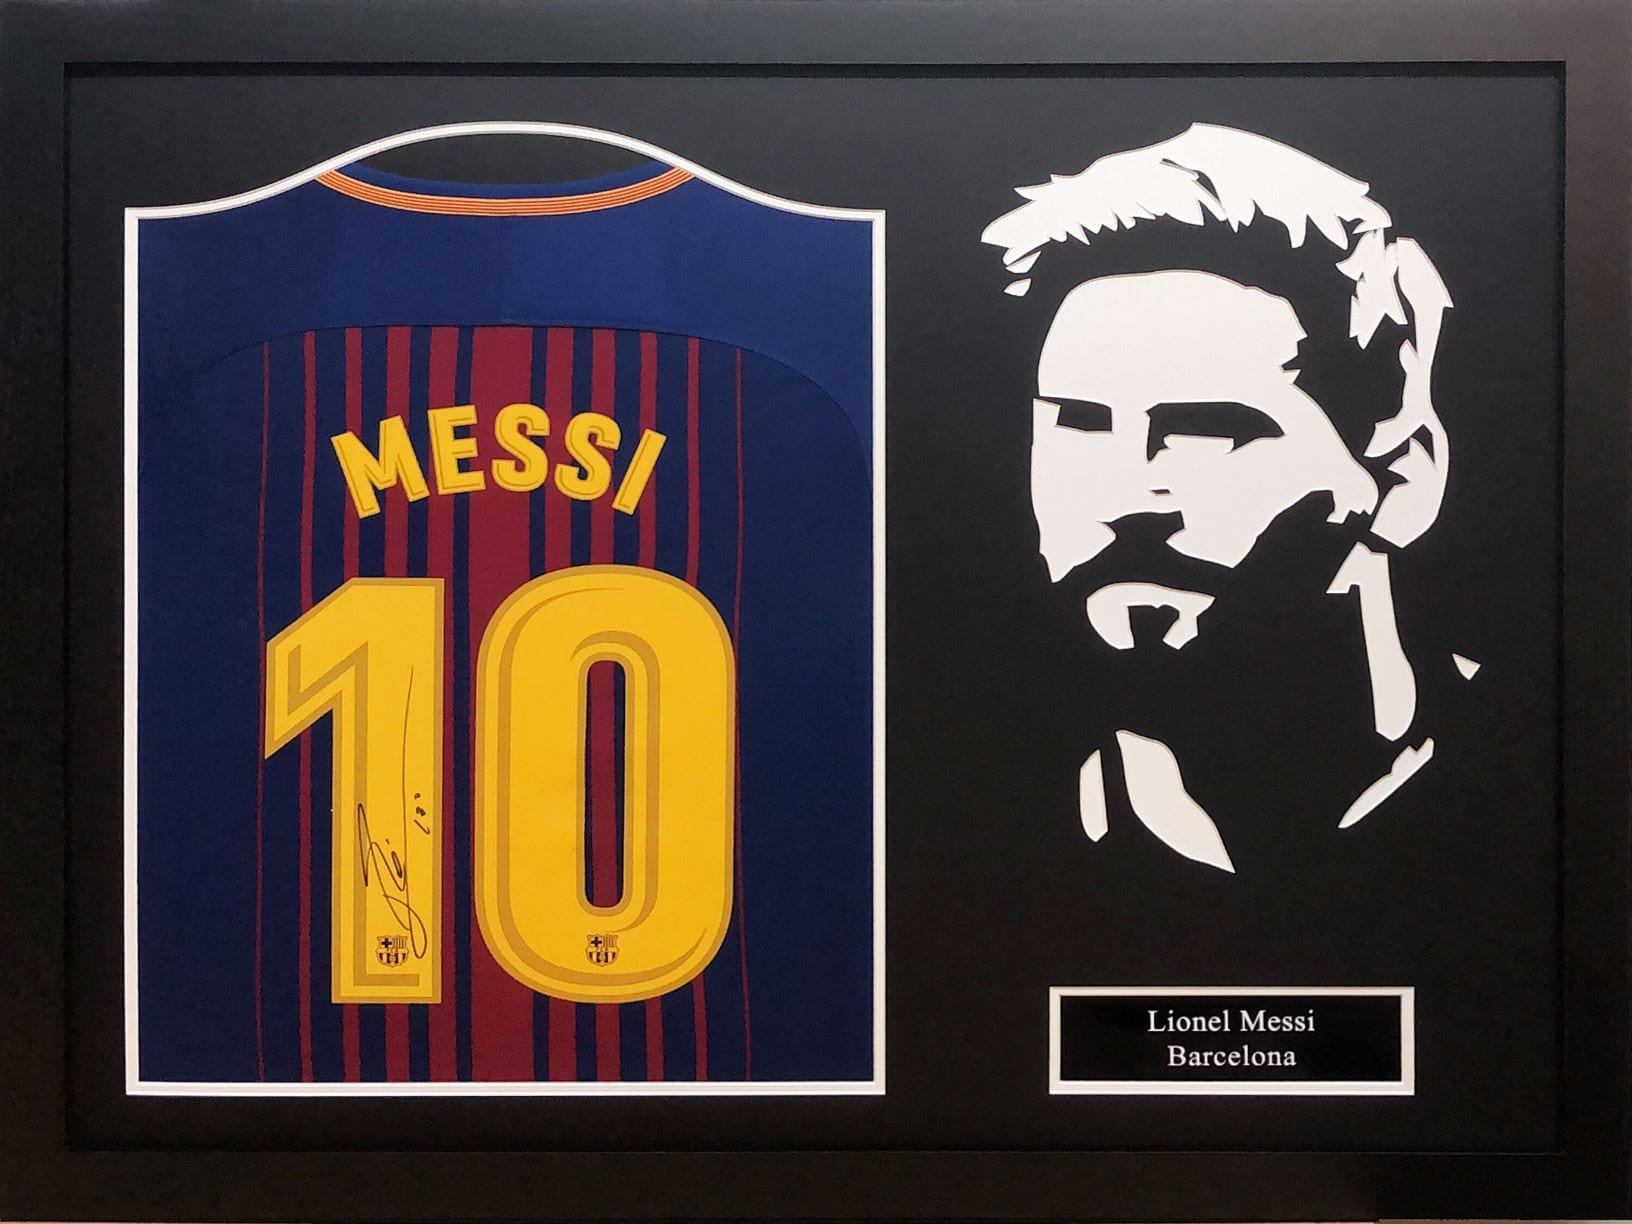 34c8d6009f9 lionel messi signed shirt – framed. Download Image 1632 X 1224